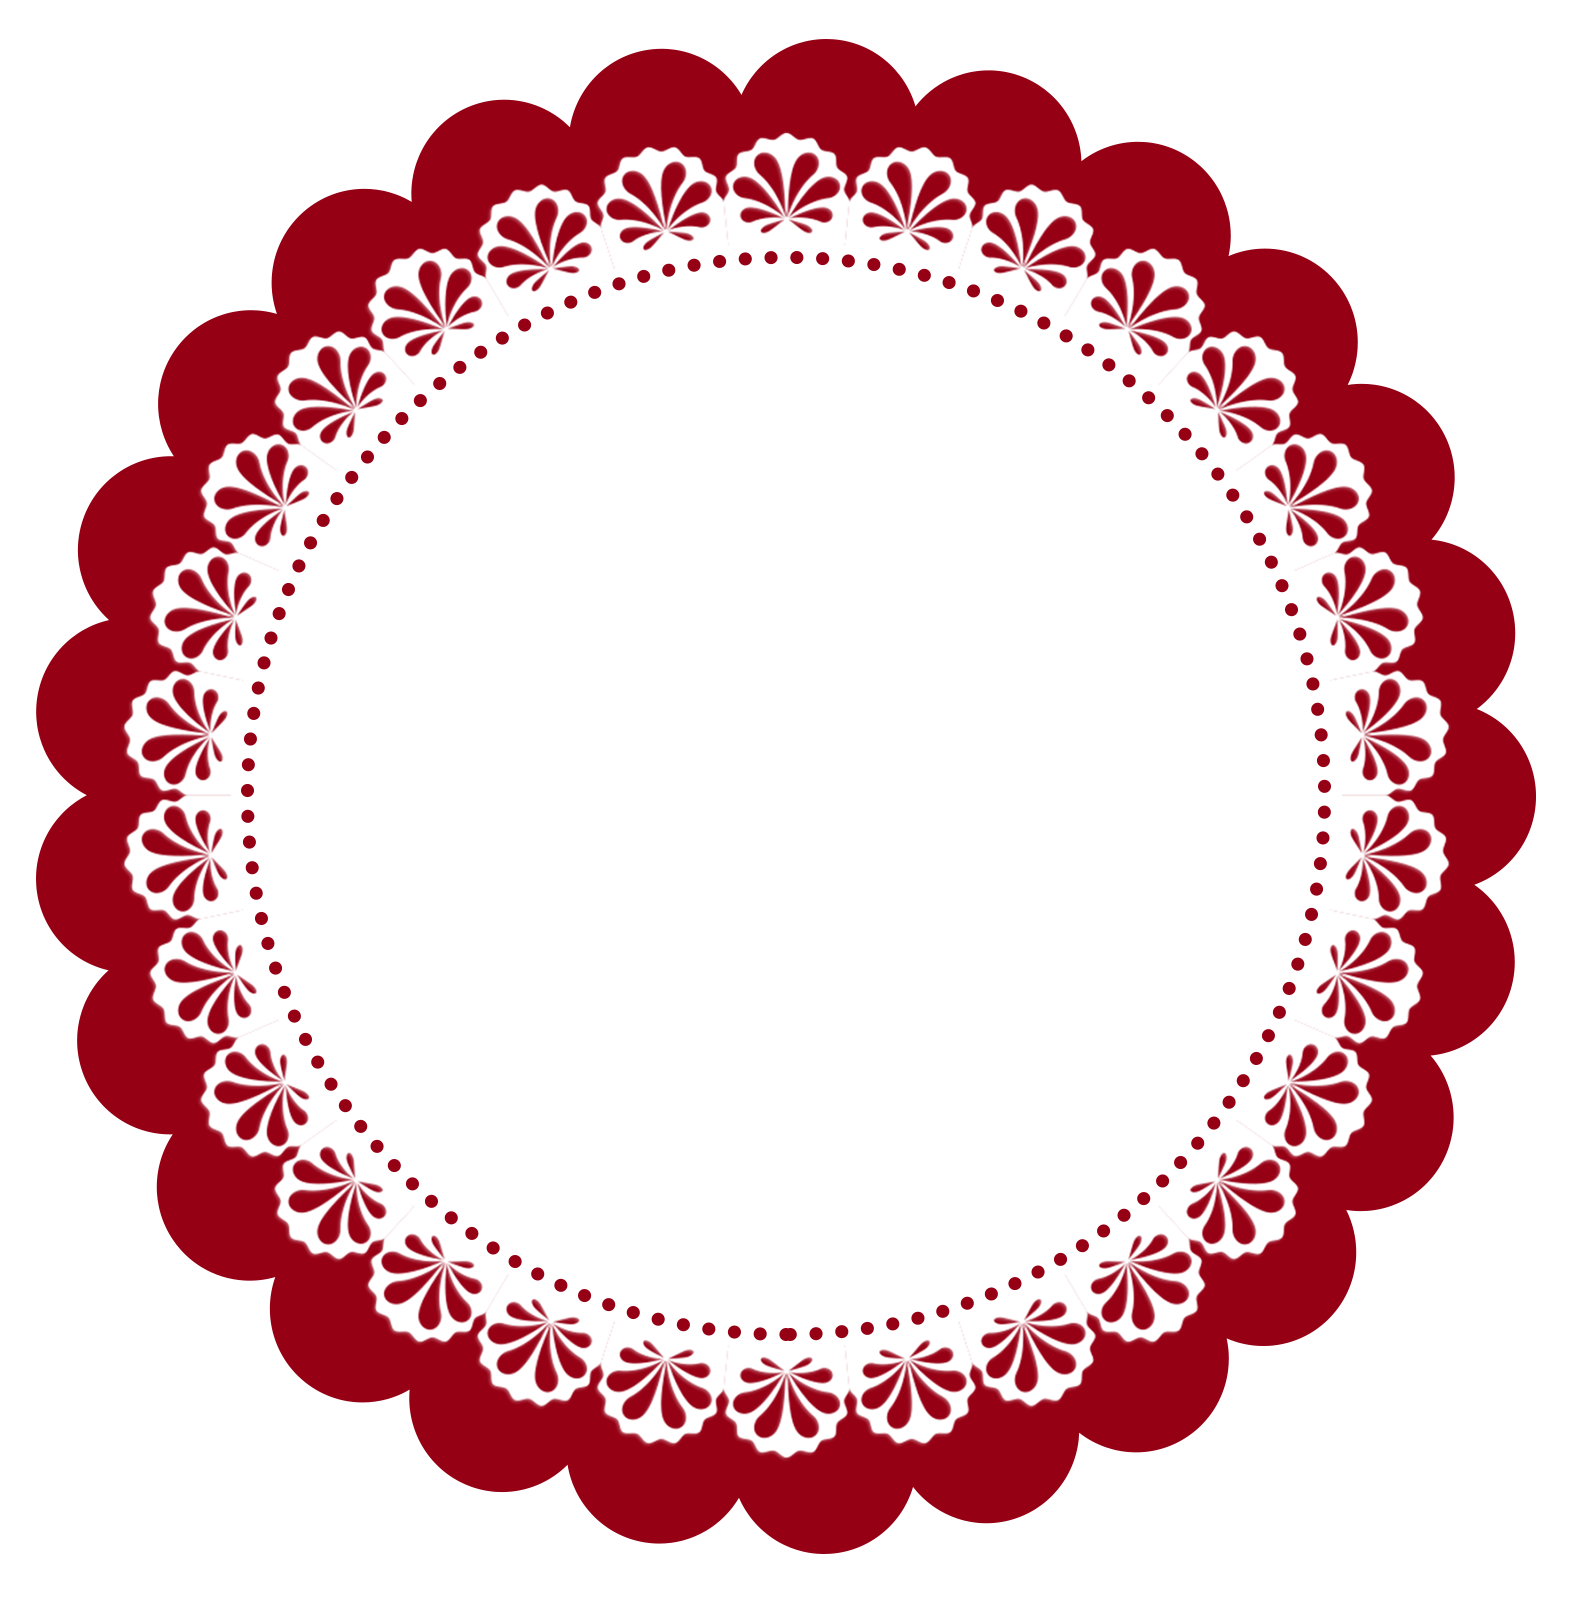 Circle clipart doily. Escalopes em png gr